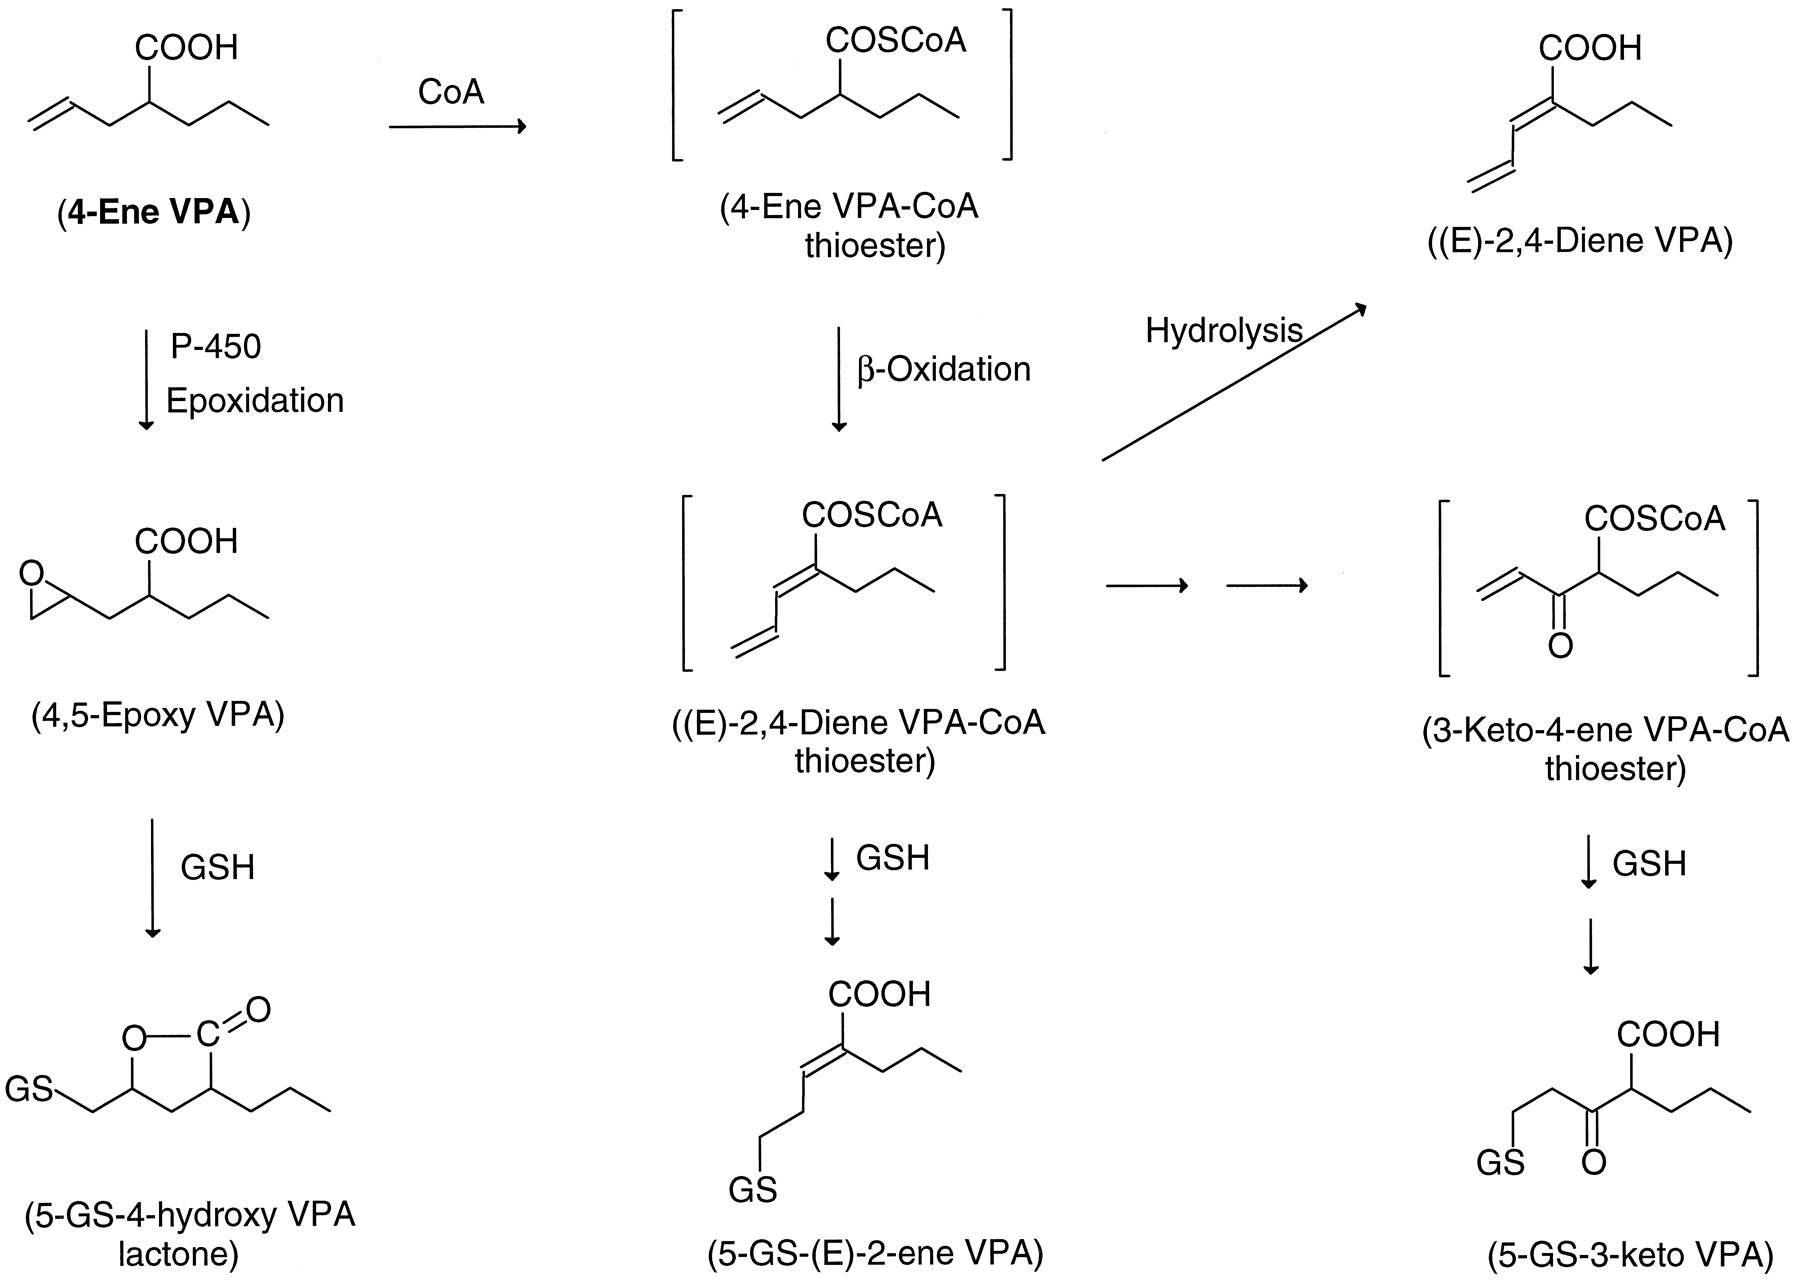 Fs1 On Spectrum >> A Comparative Investigation of 2-Propyl-4-Pentenoic Acid (4-ene VPA) and its α-Fluorinated ...